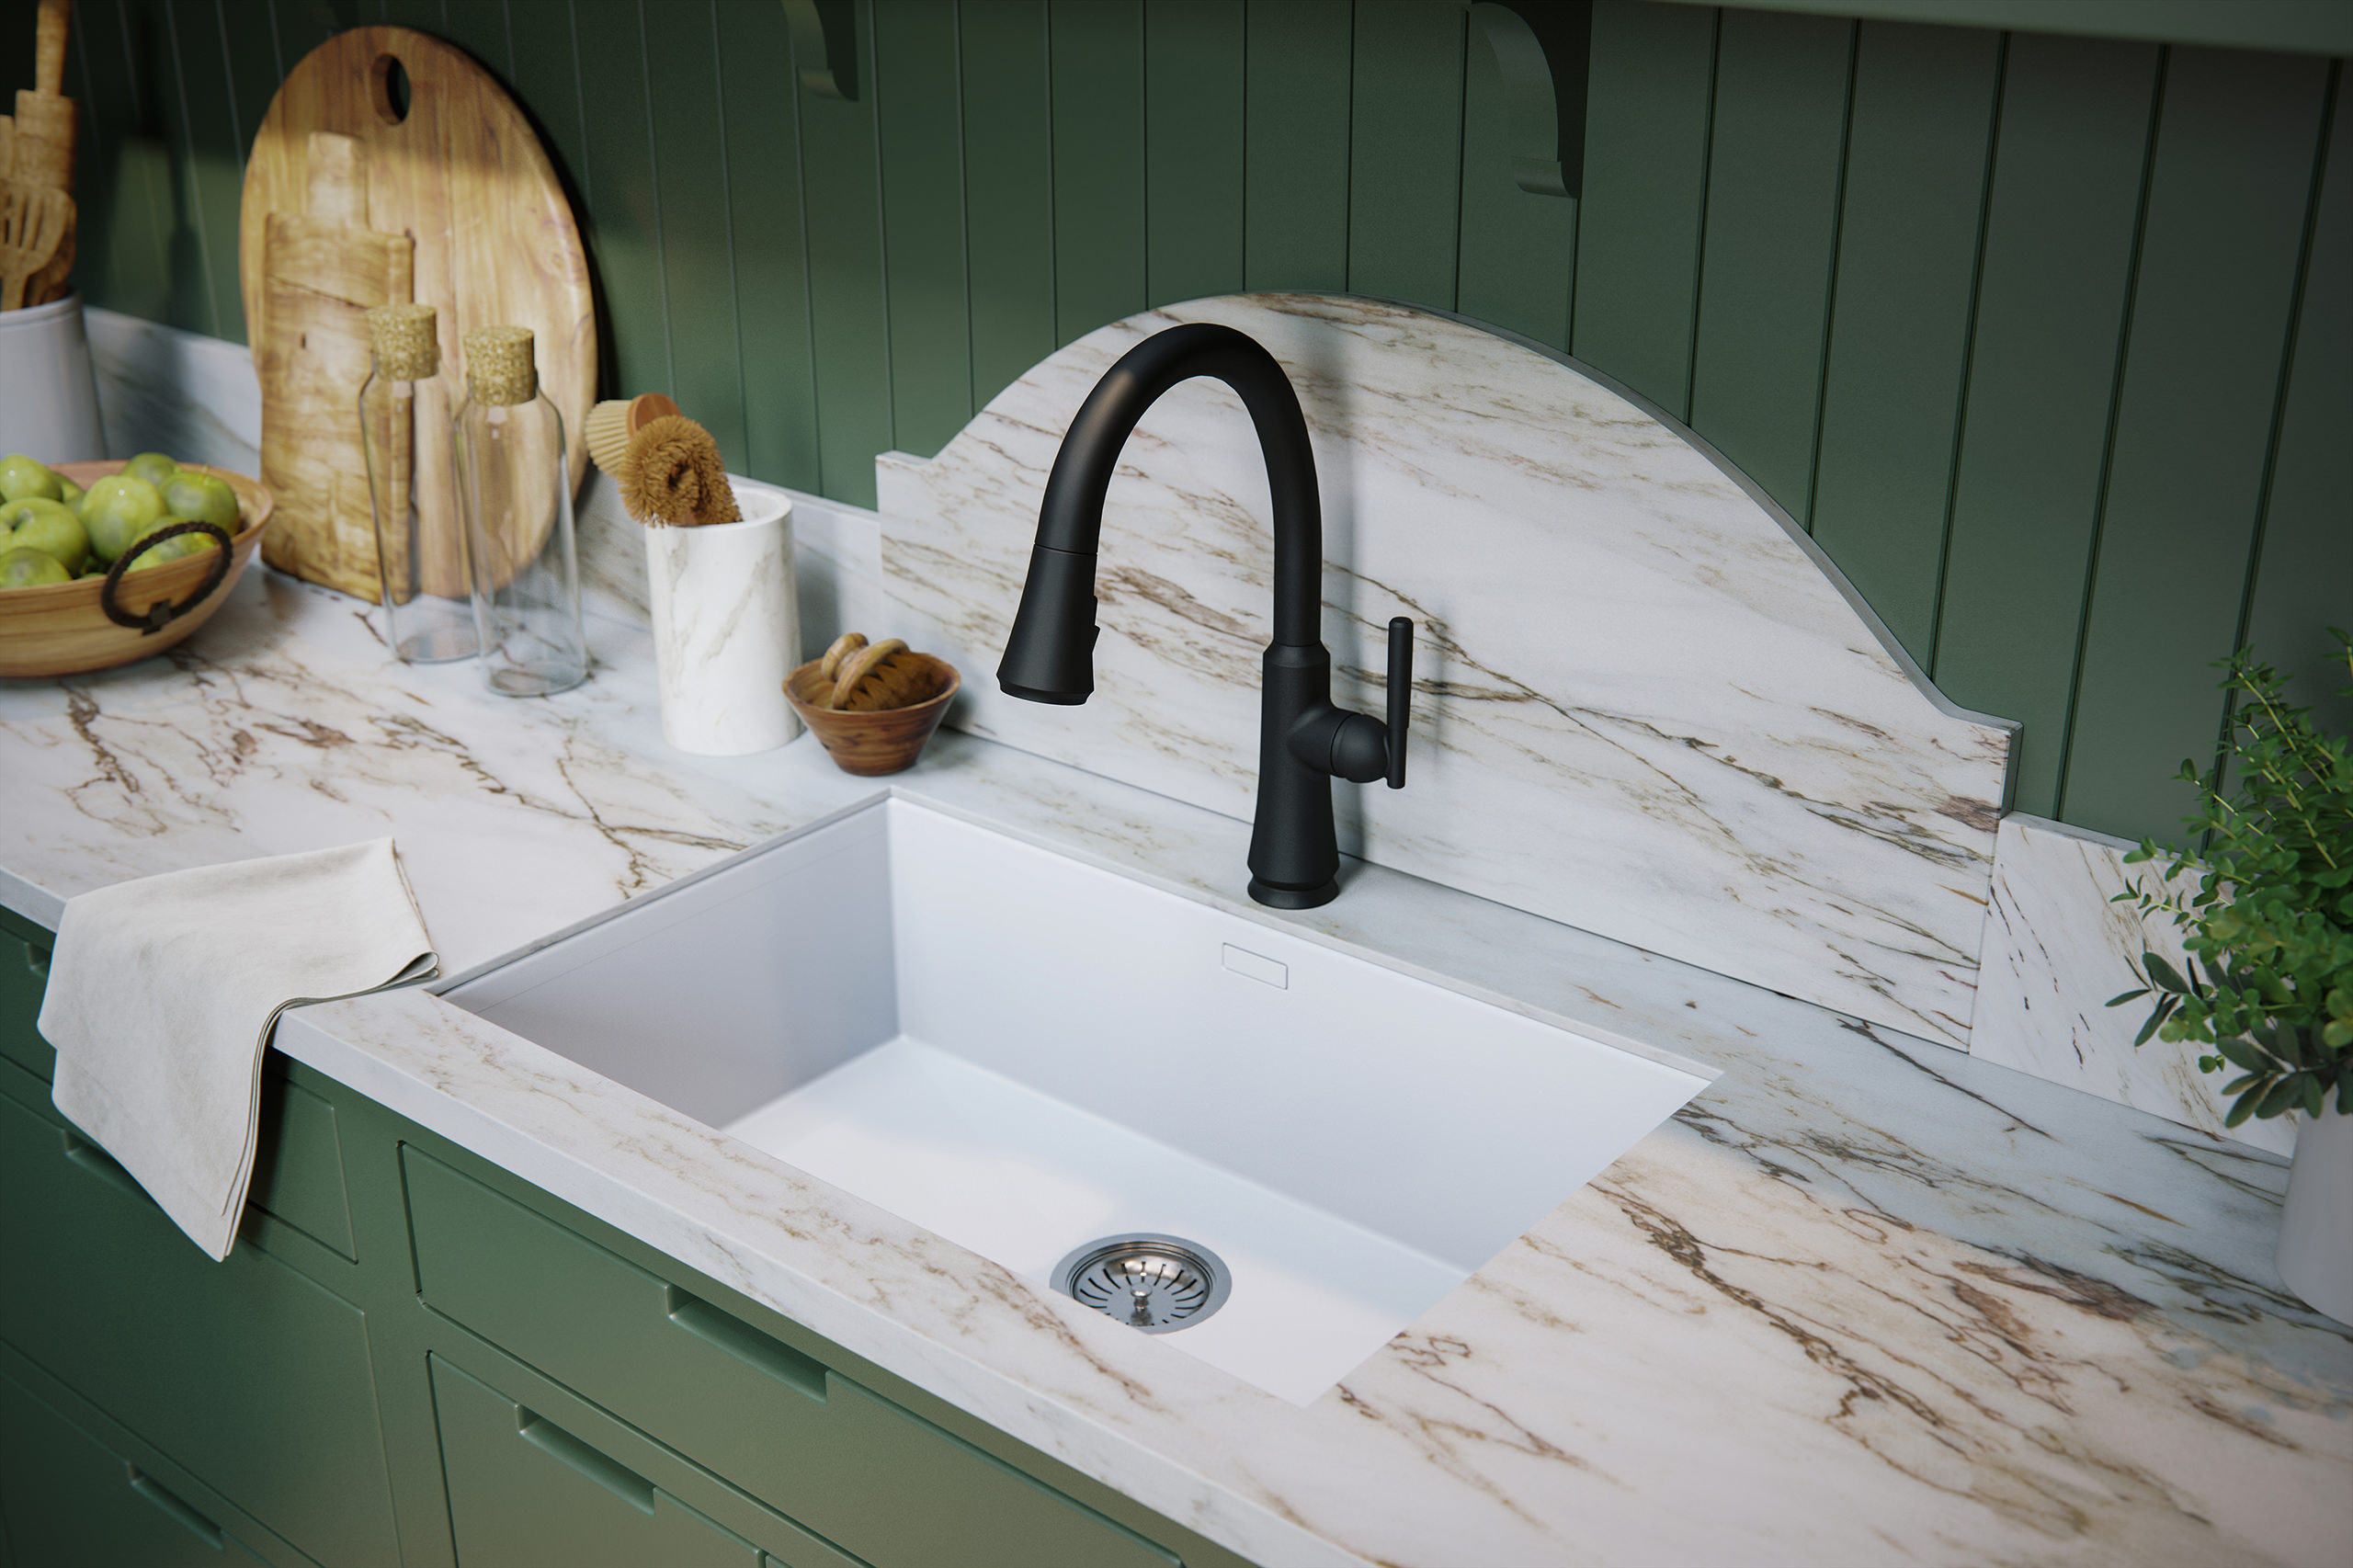 Close-up visualization of a black matte Delta Coranto kitchen faucet on top of a marble sink with a white towel and wooden accessories around